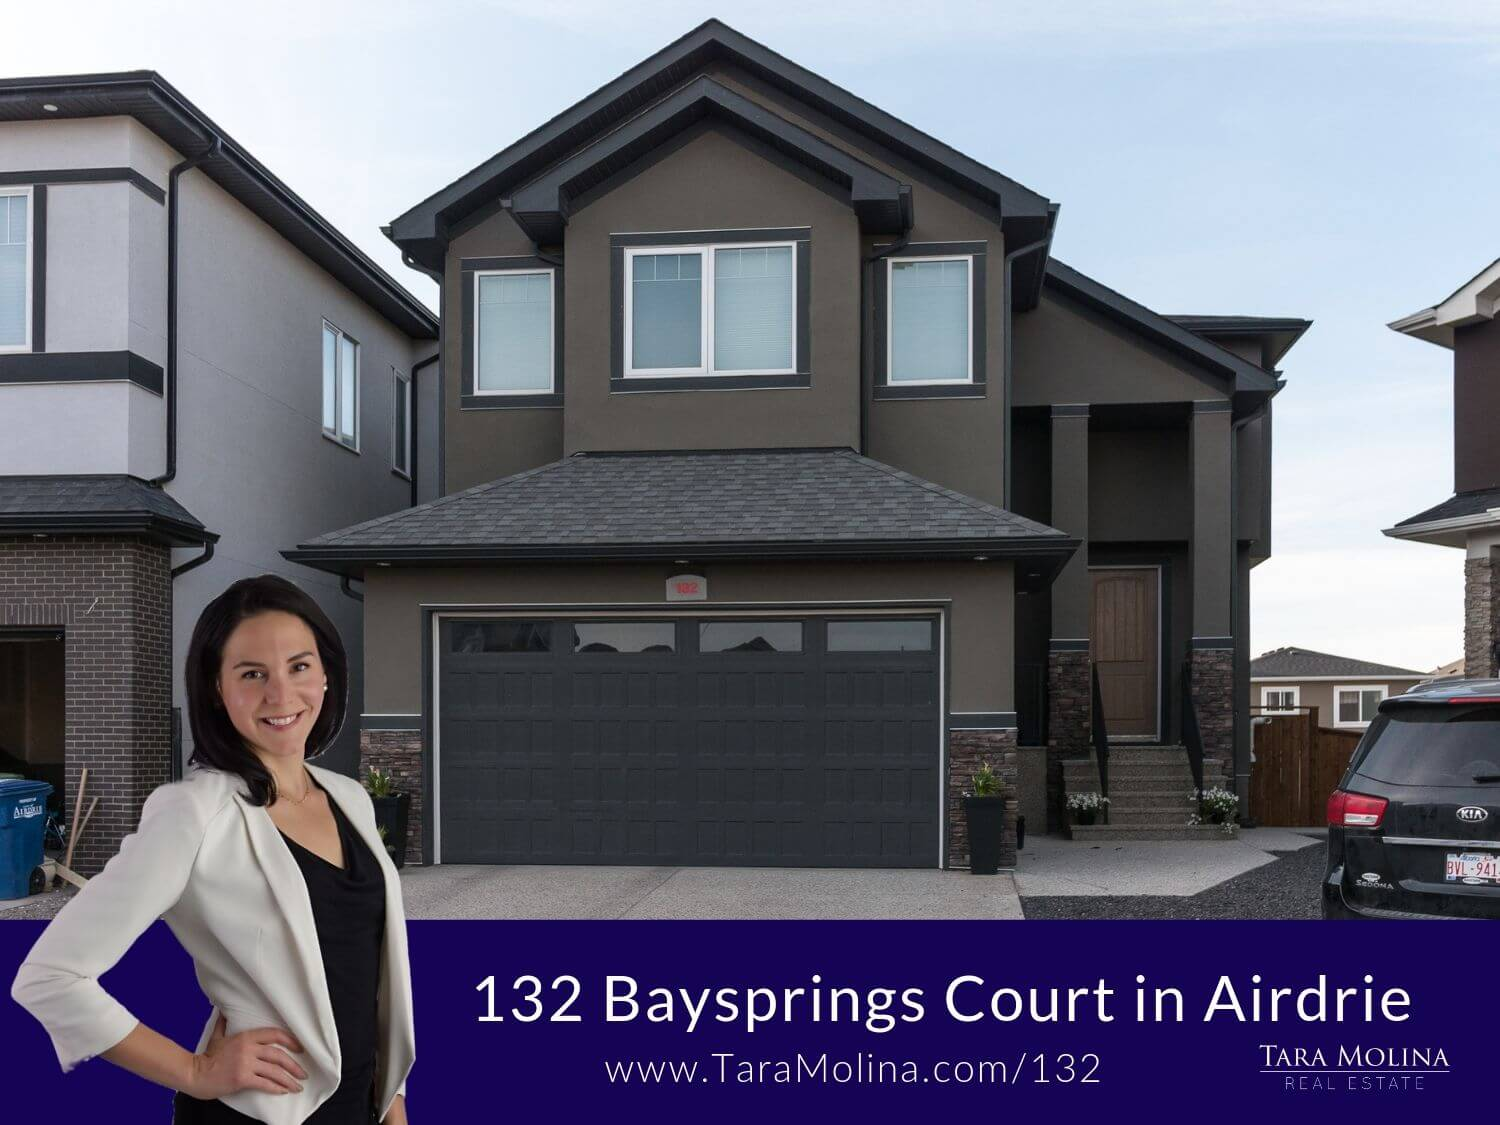 132 Baysprings Court in Airdrie - Tara Molina Real Estate